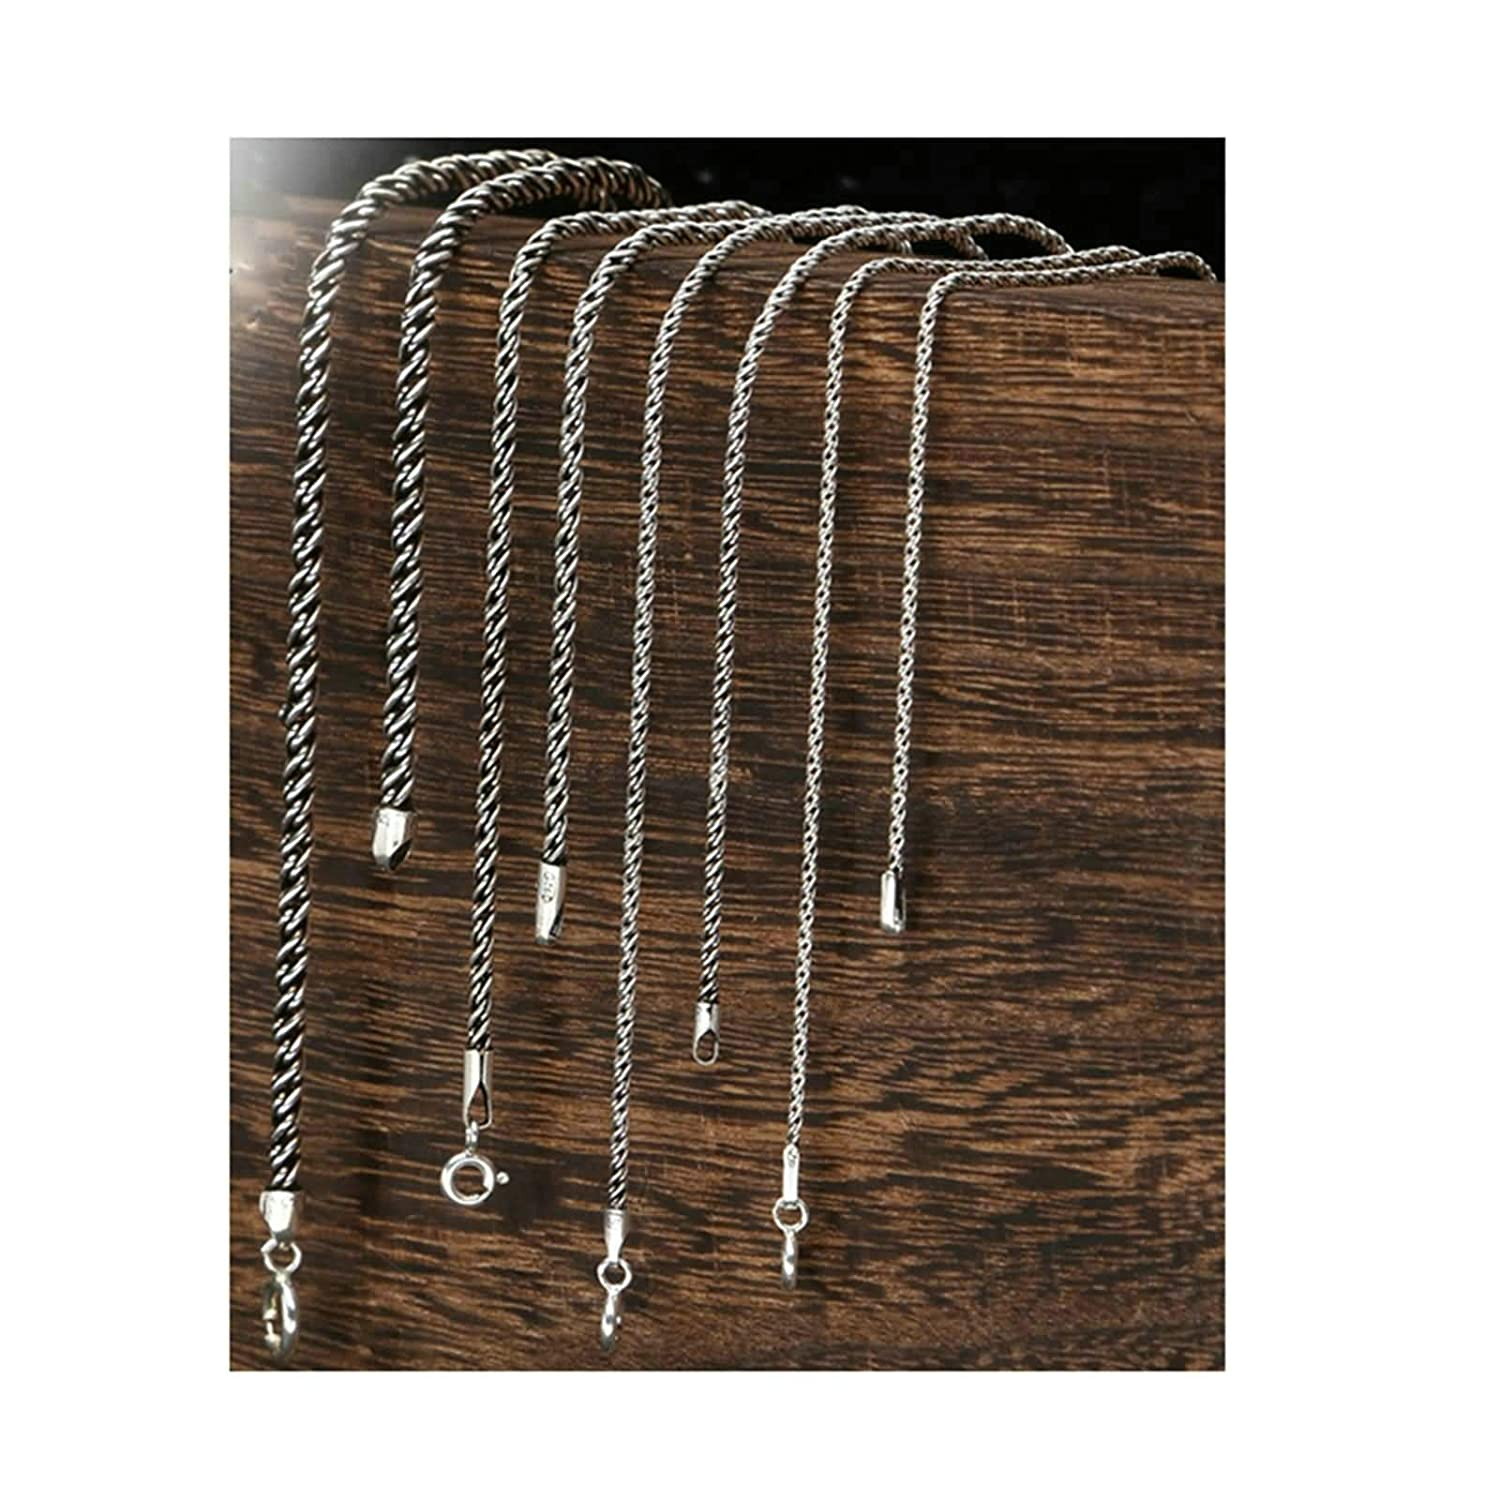 Aooaz Personalized Necklaces Round Chain Mens Silver Chain Necklace